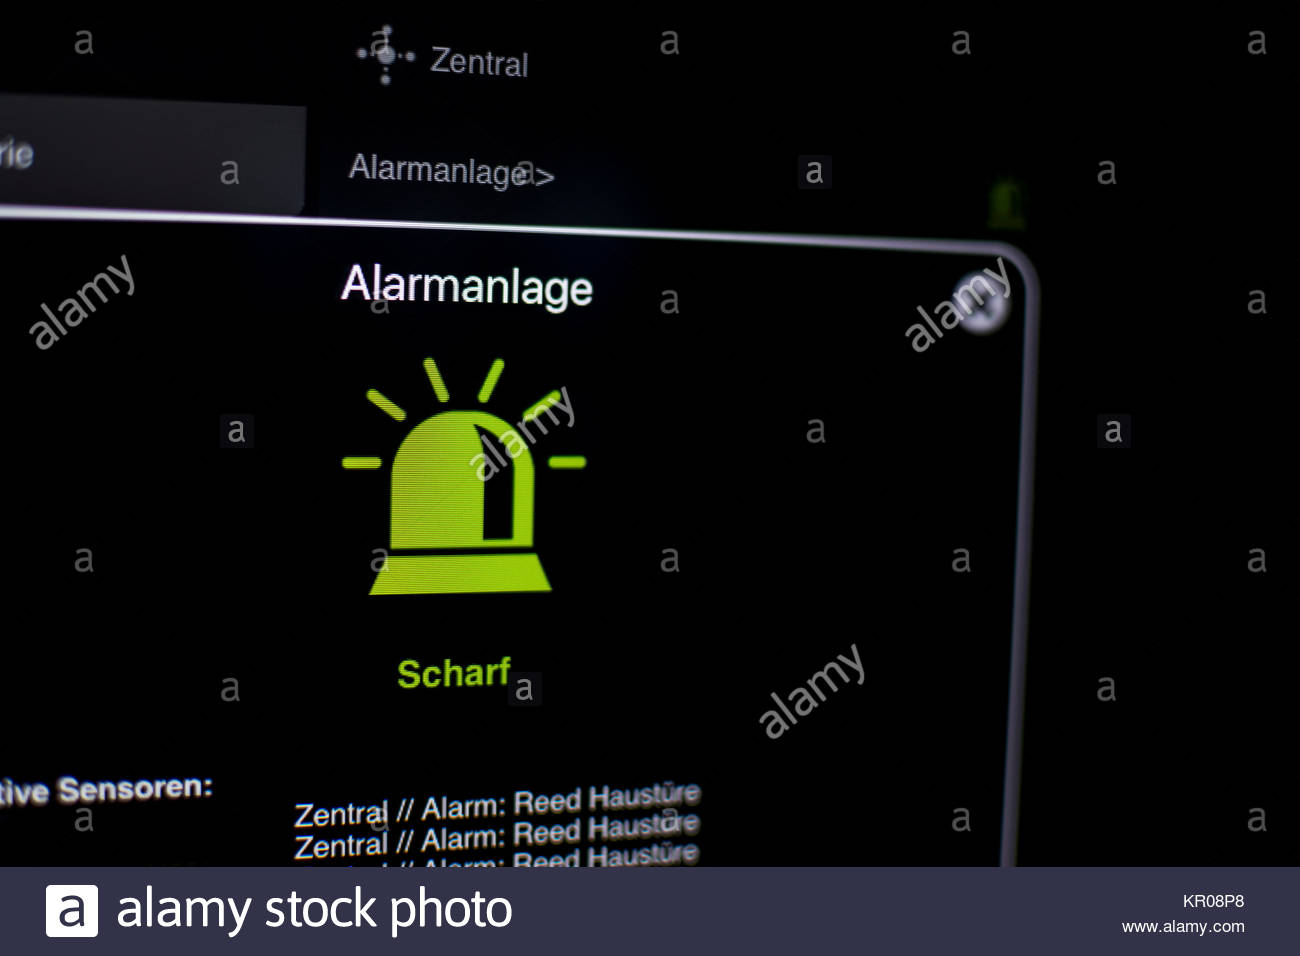 alarm visualization on the tablet with smart home - Stock Image